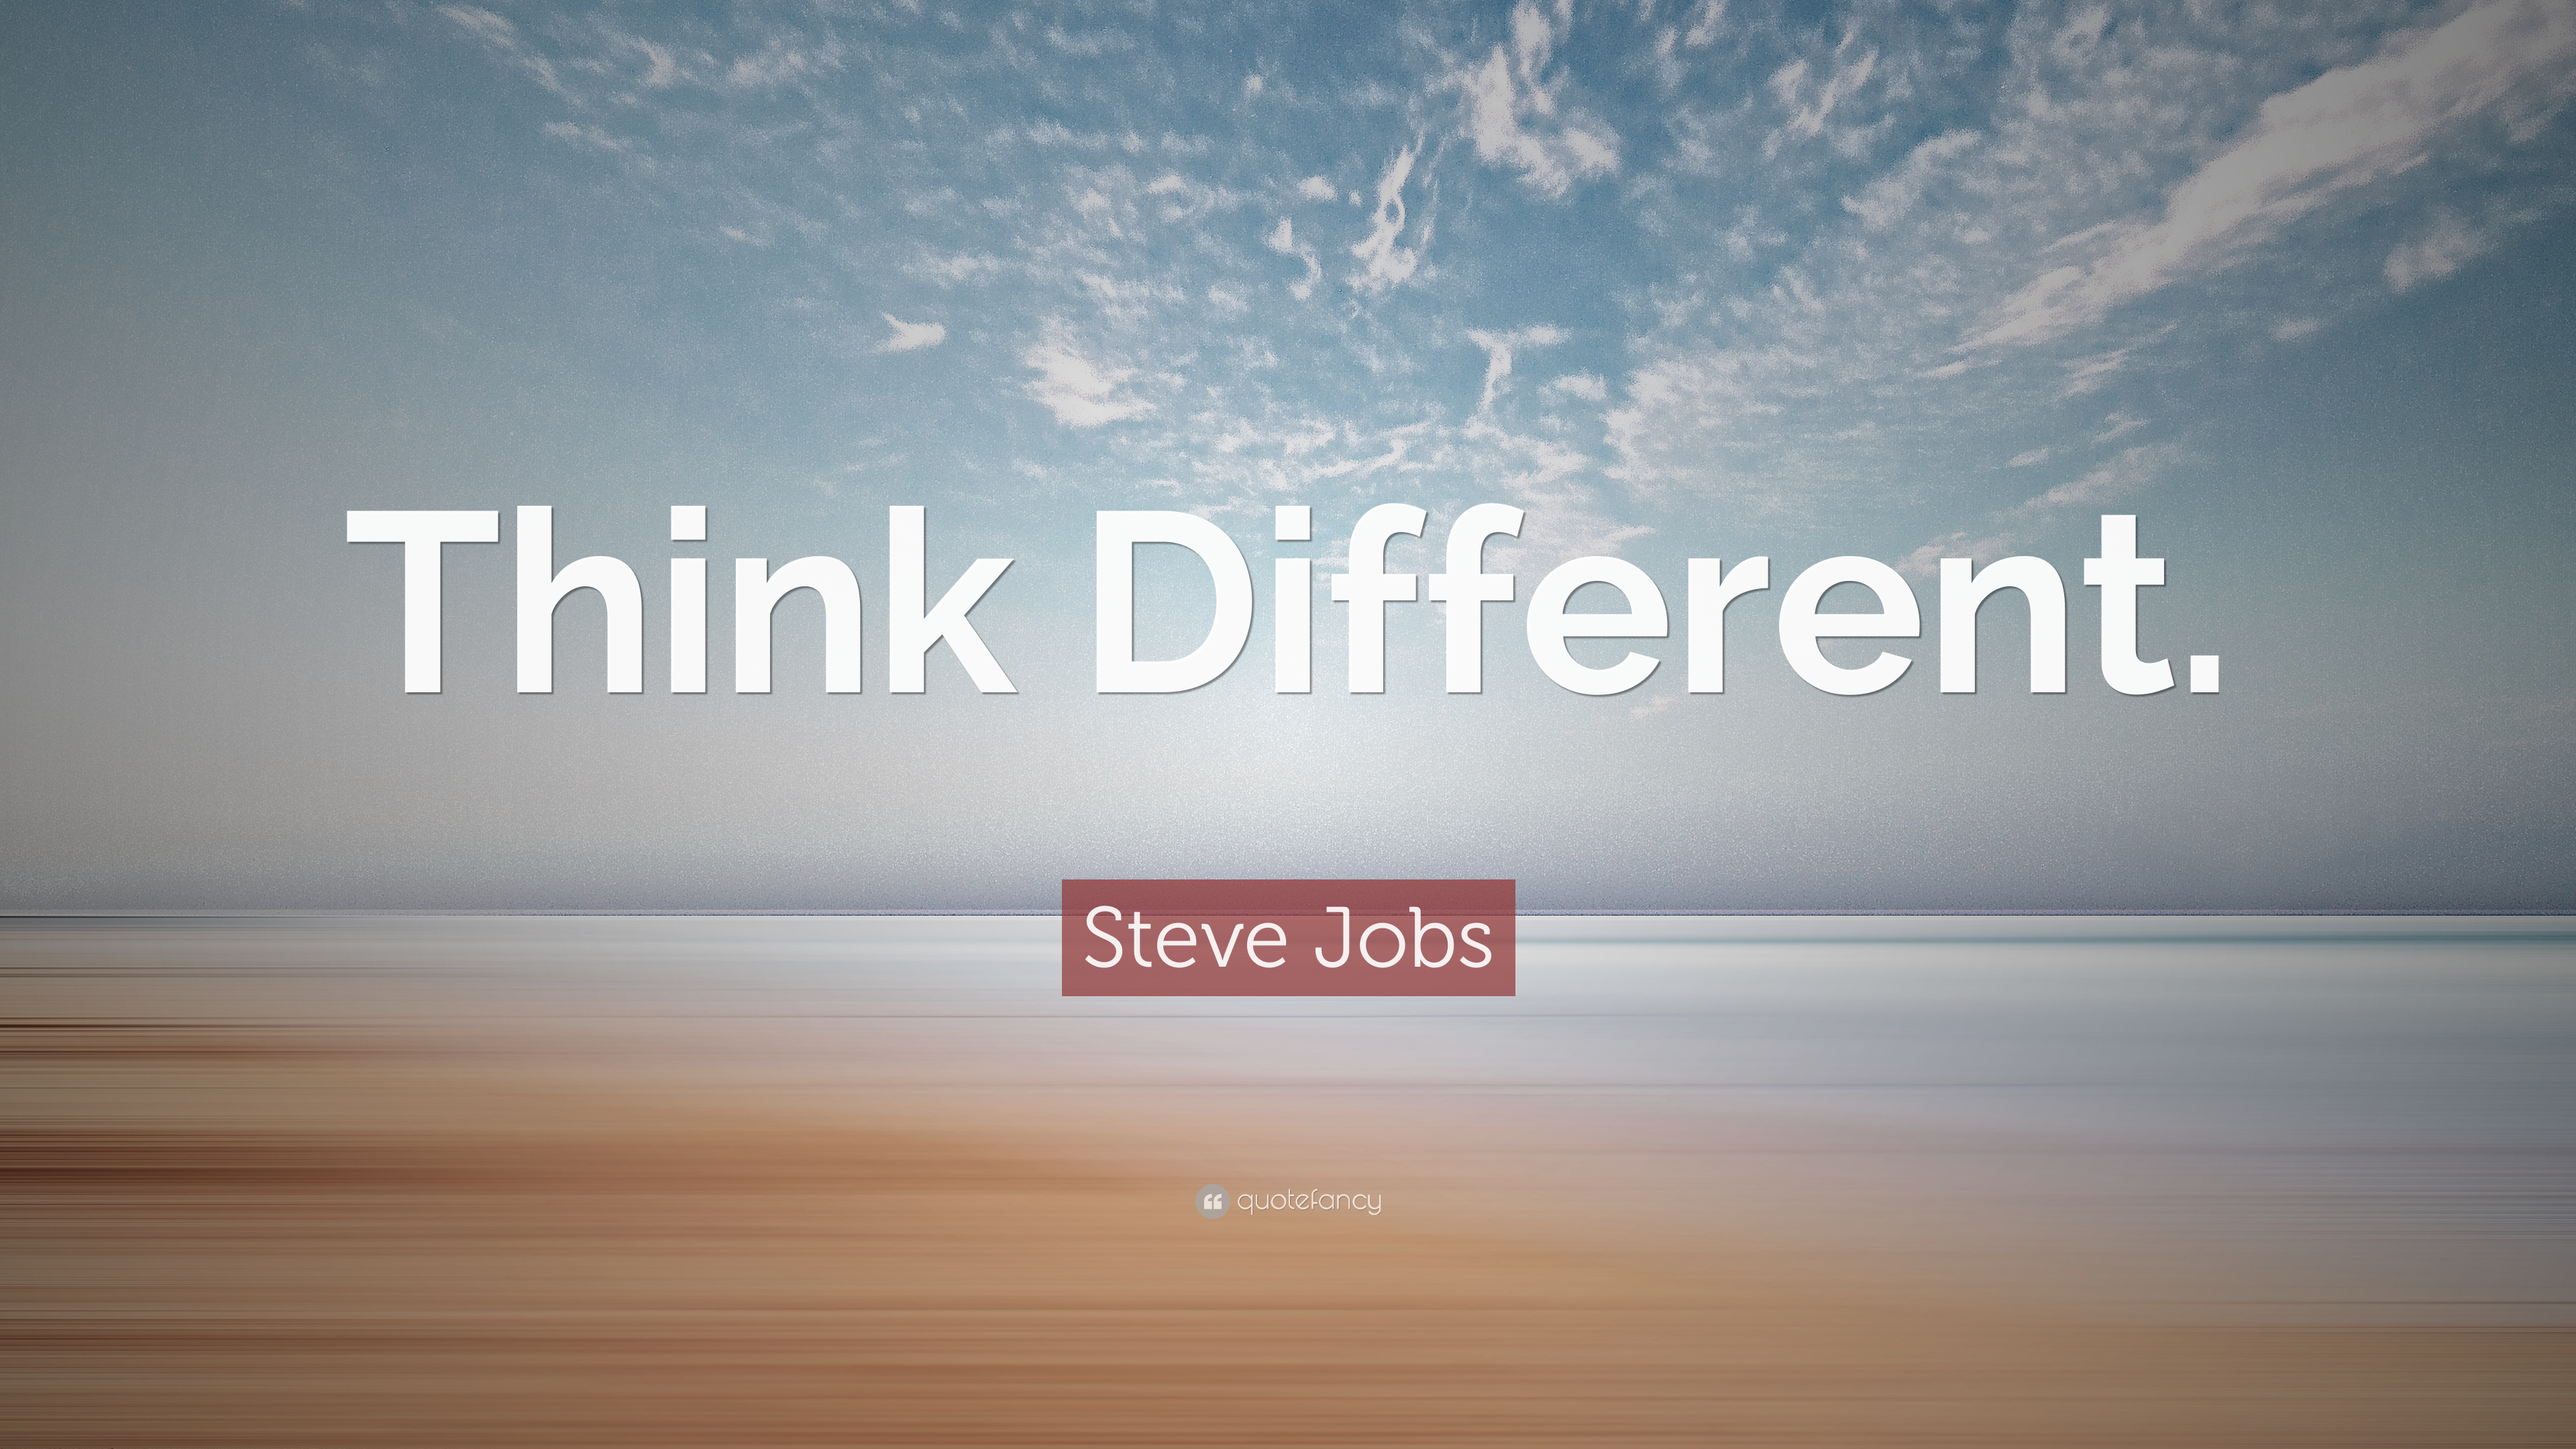 steve jobs quote   u201cthink different  u201d  21 wallpapers